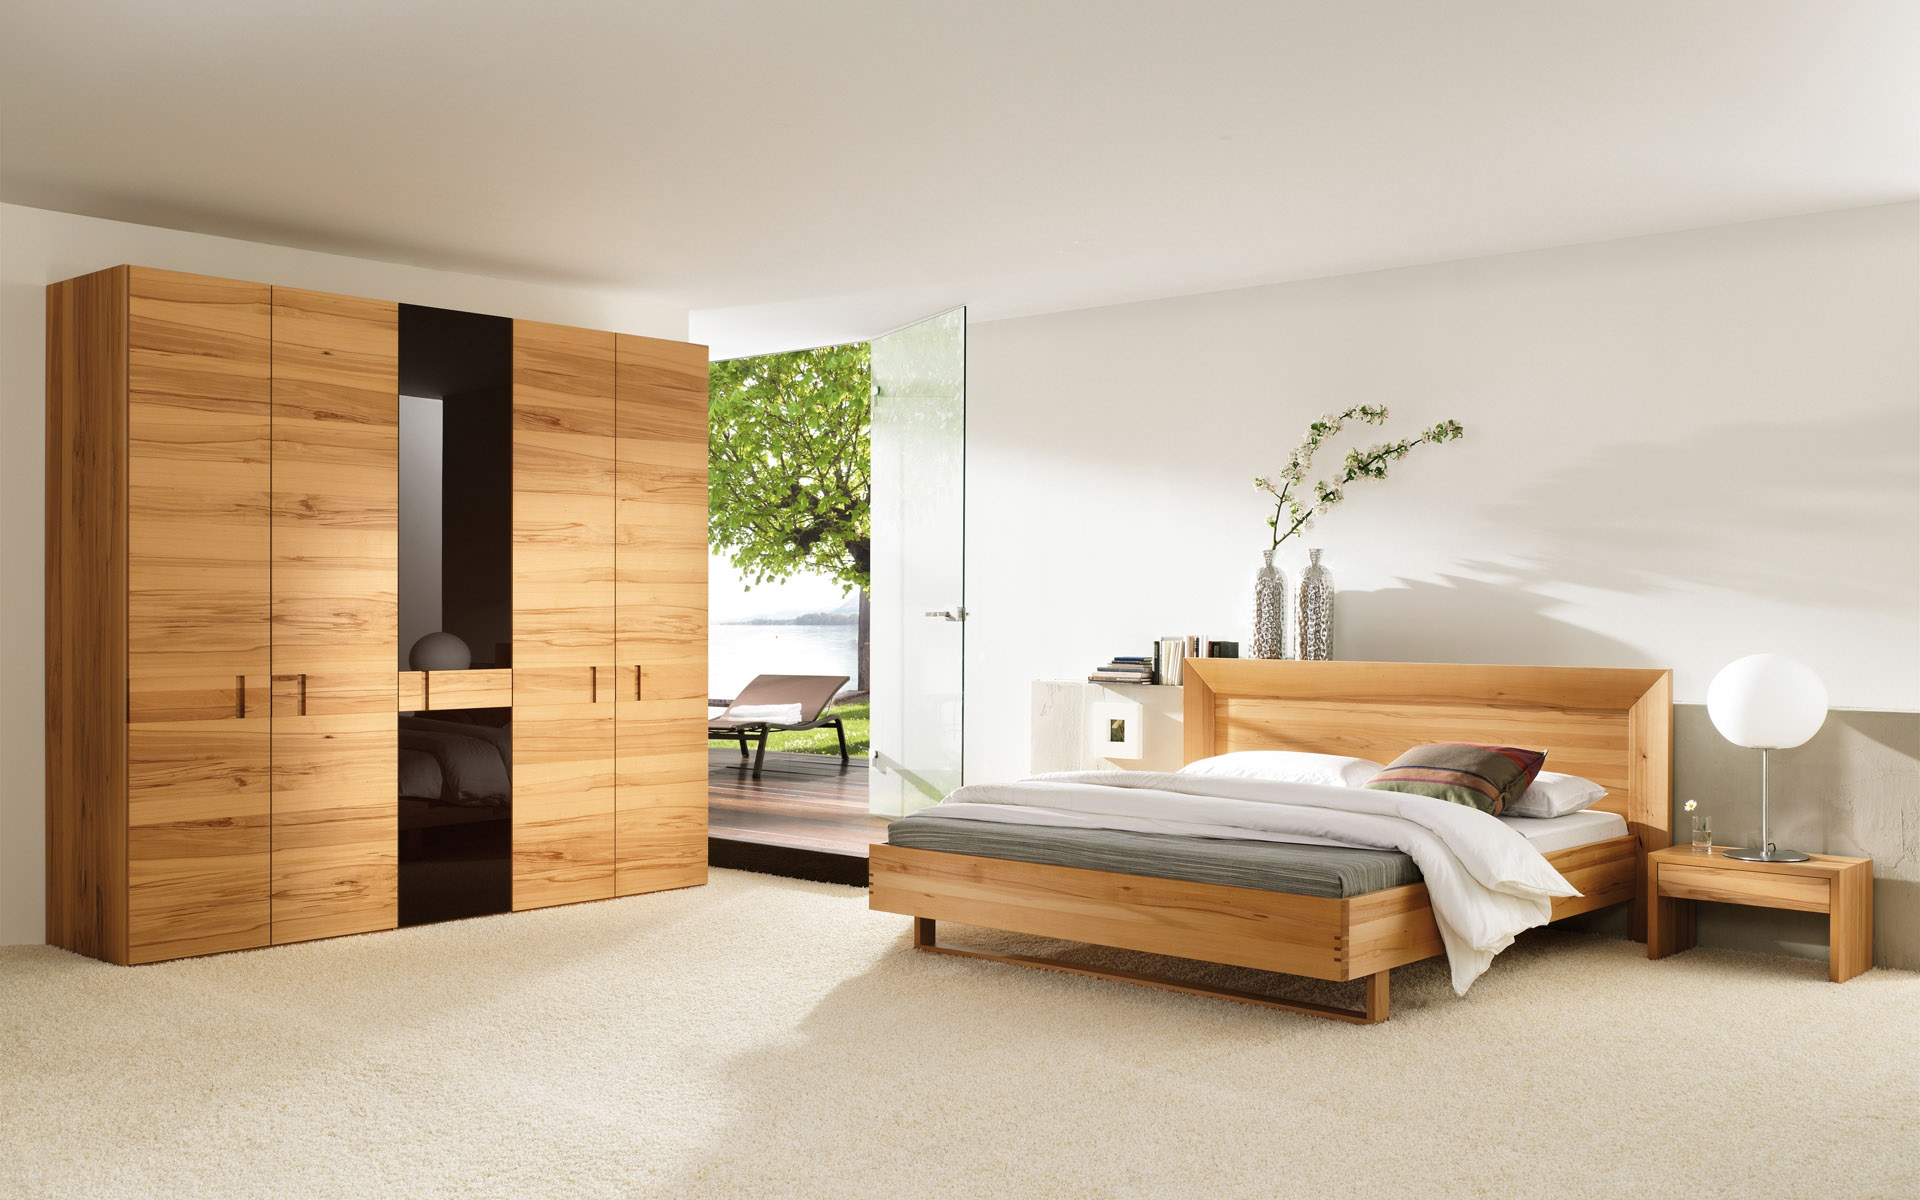 Bedroom Wardrobe Style Wooden   Stock Photos Images HD 1920x1200